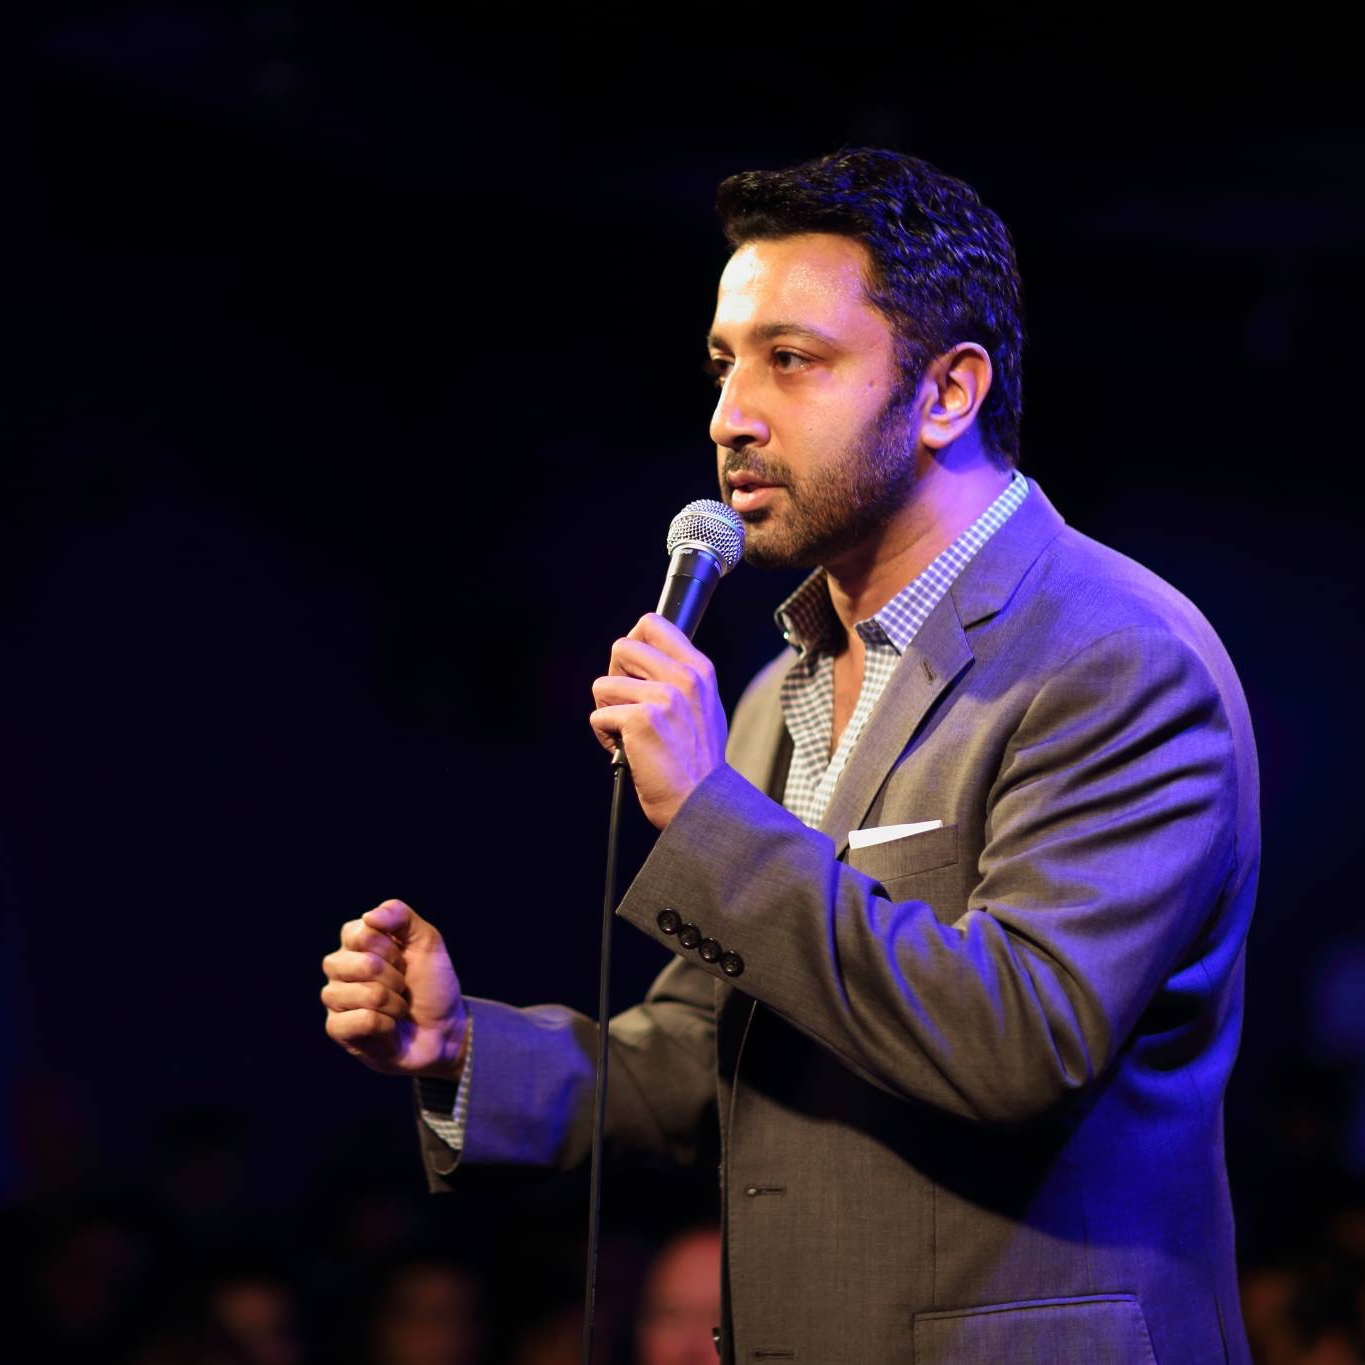 Anish Shah — April 15, 2018 — Red Light Café, Atlanta, GA